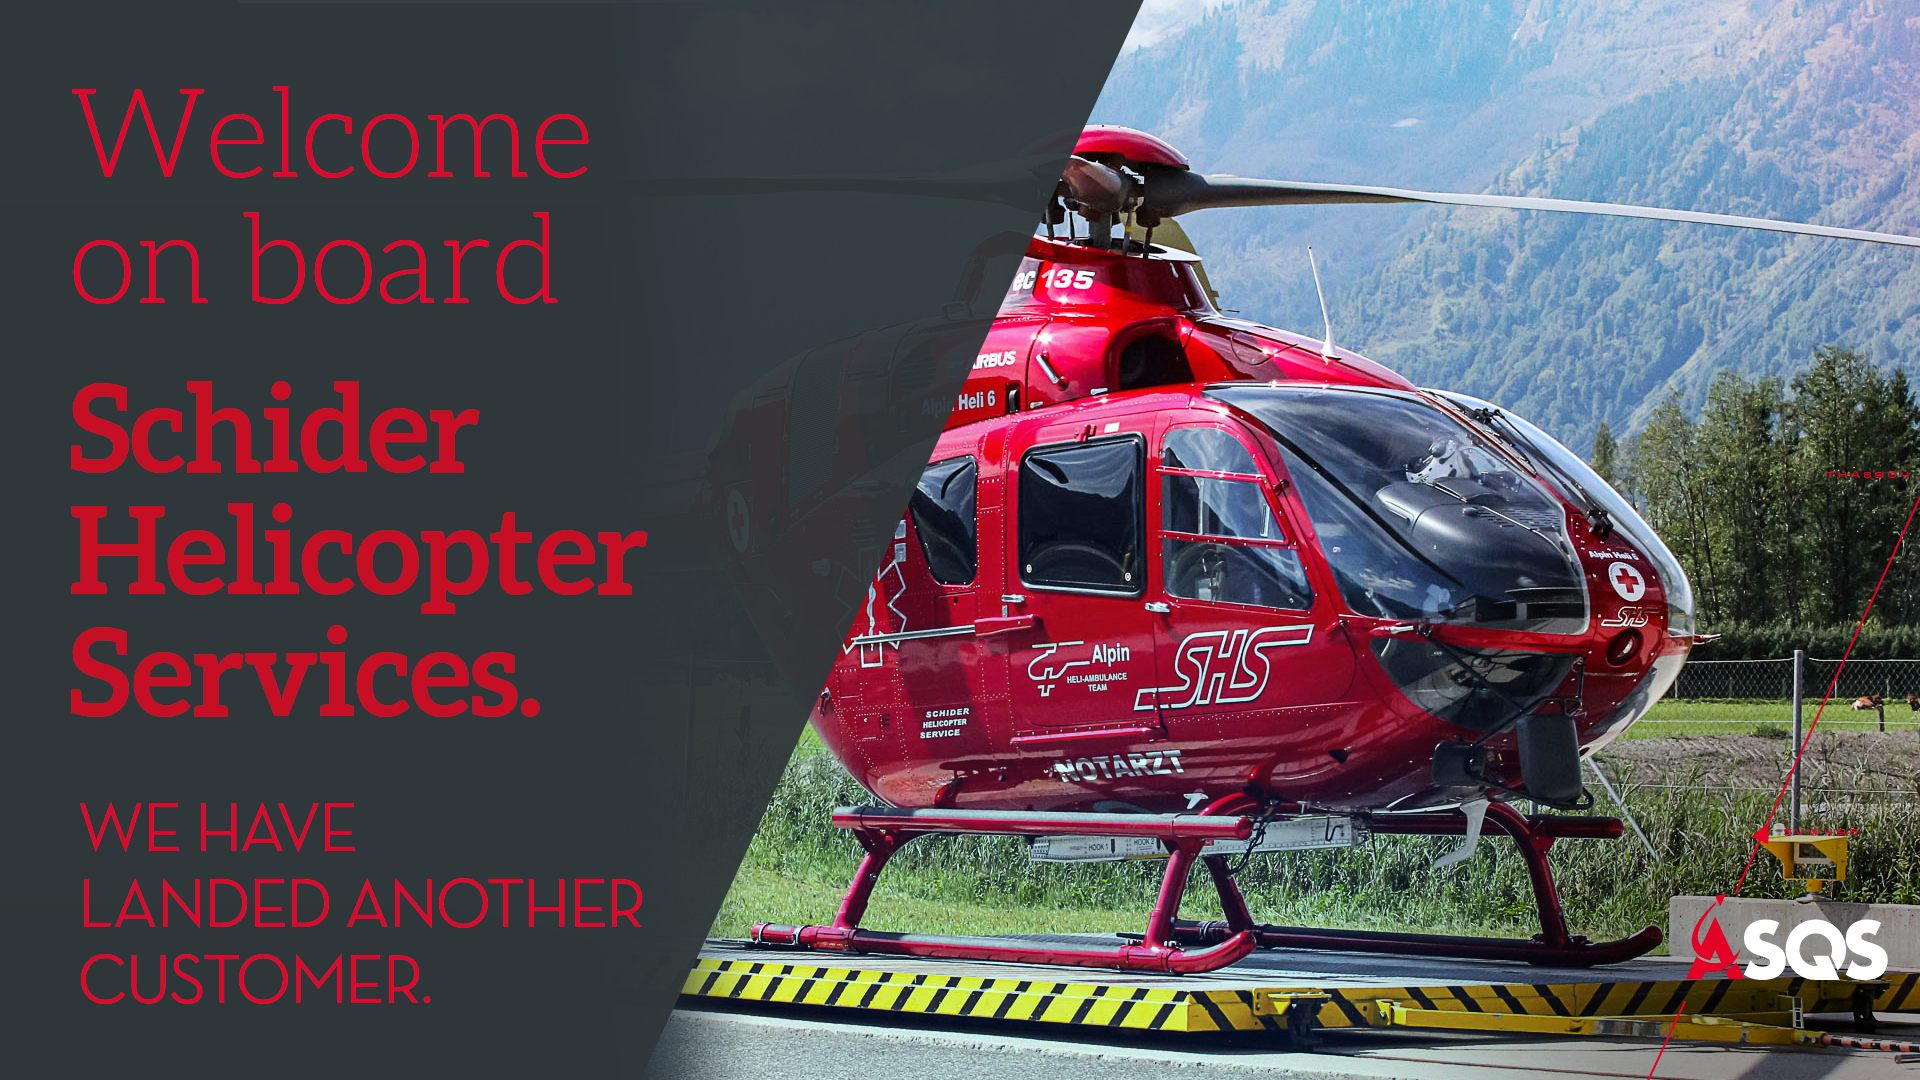 ASQS, IQSMS, Helicopter, Helicopter Emergency Services, Austria, Schider Helicopter Services, Schider, Tyrol, Ambulance Flight, Alpes, safety management, SHS, helicopter safety